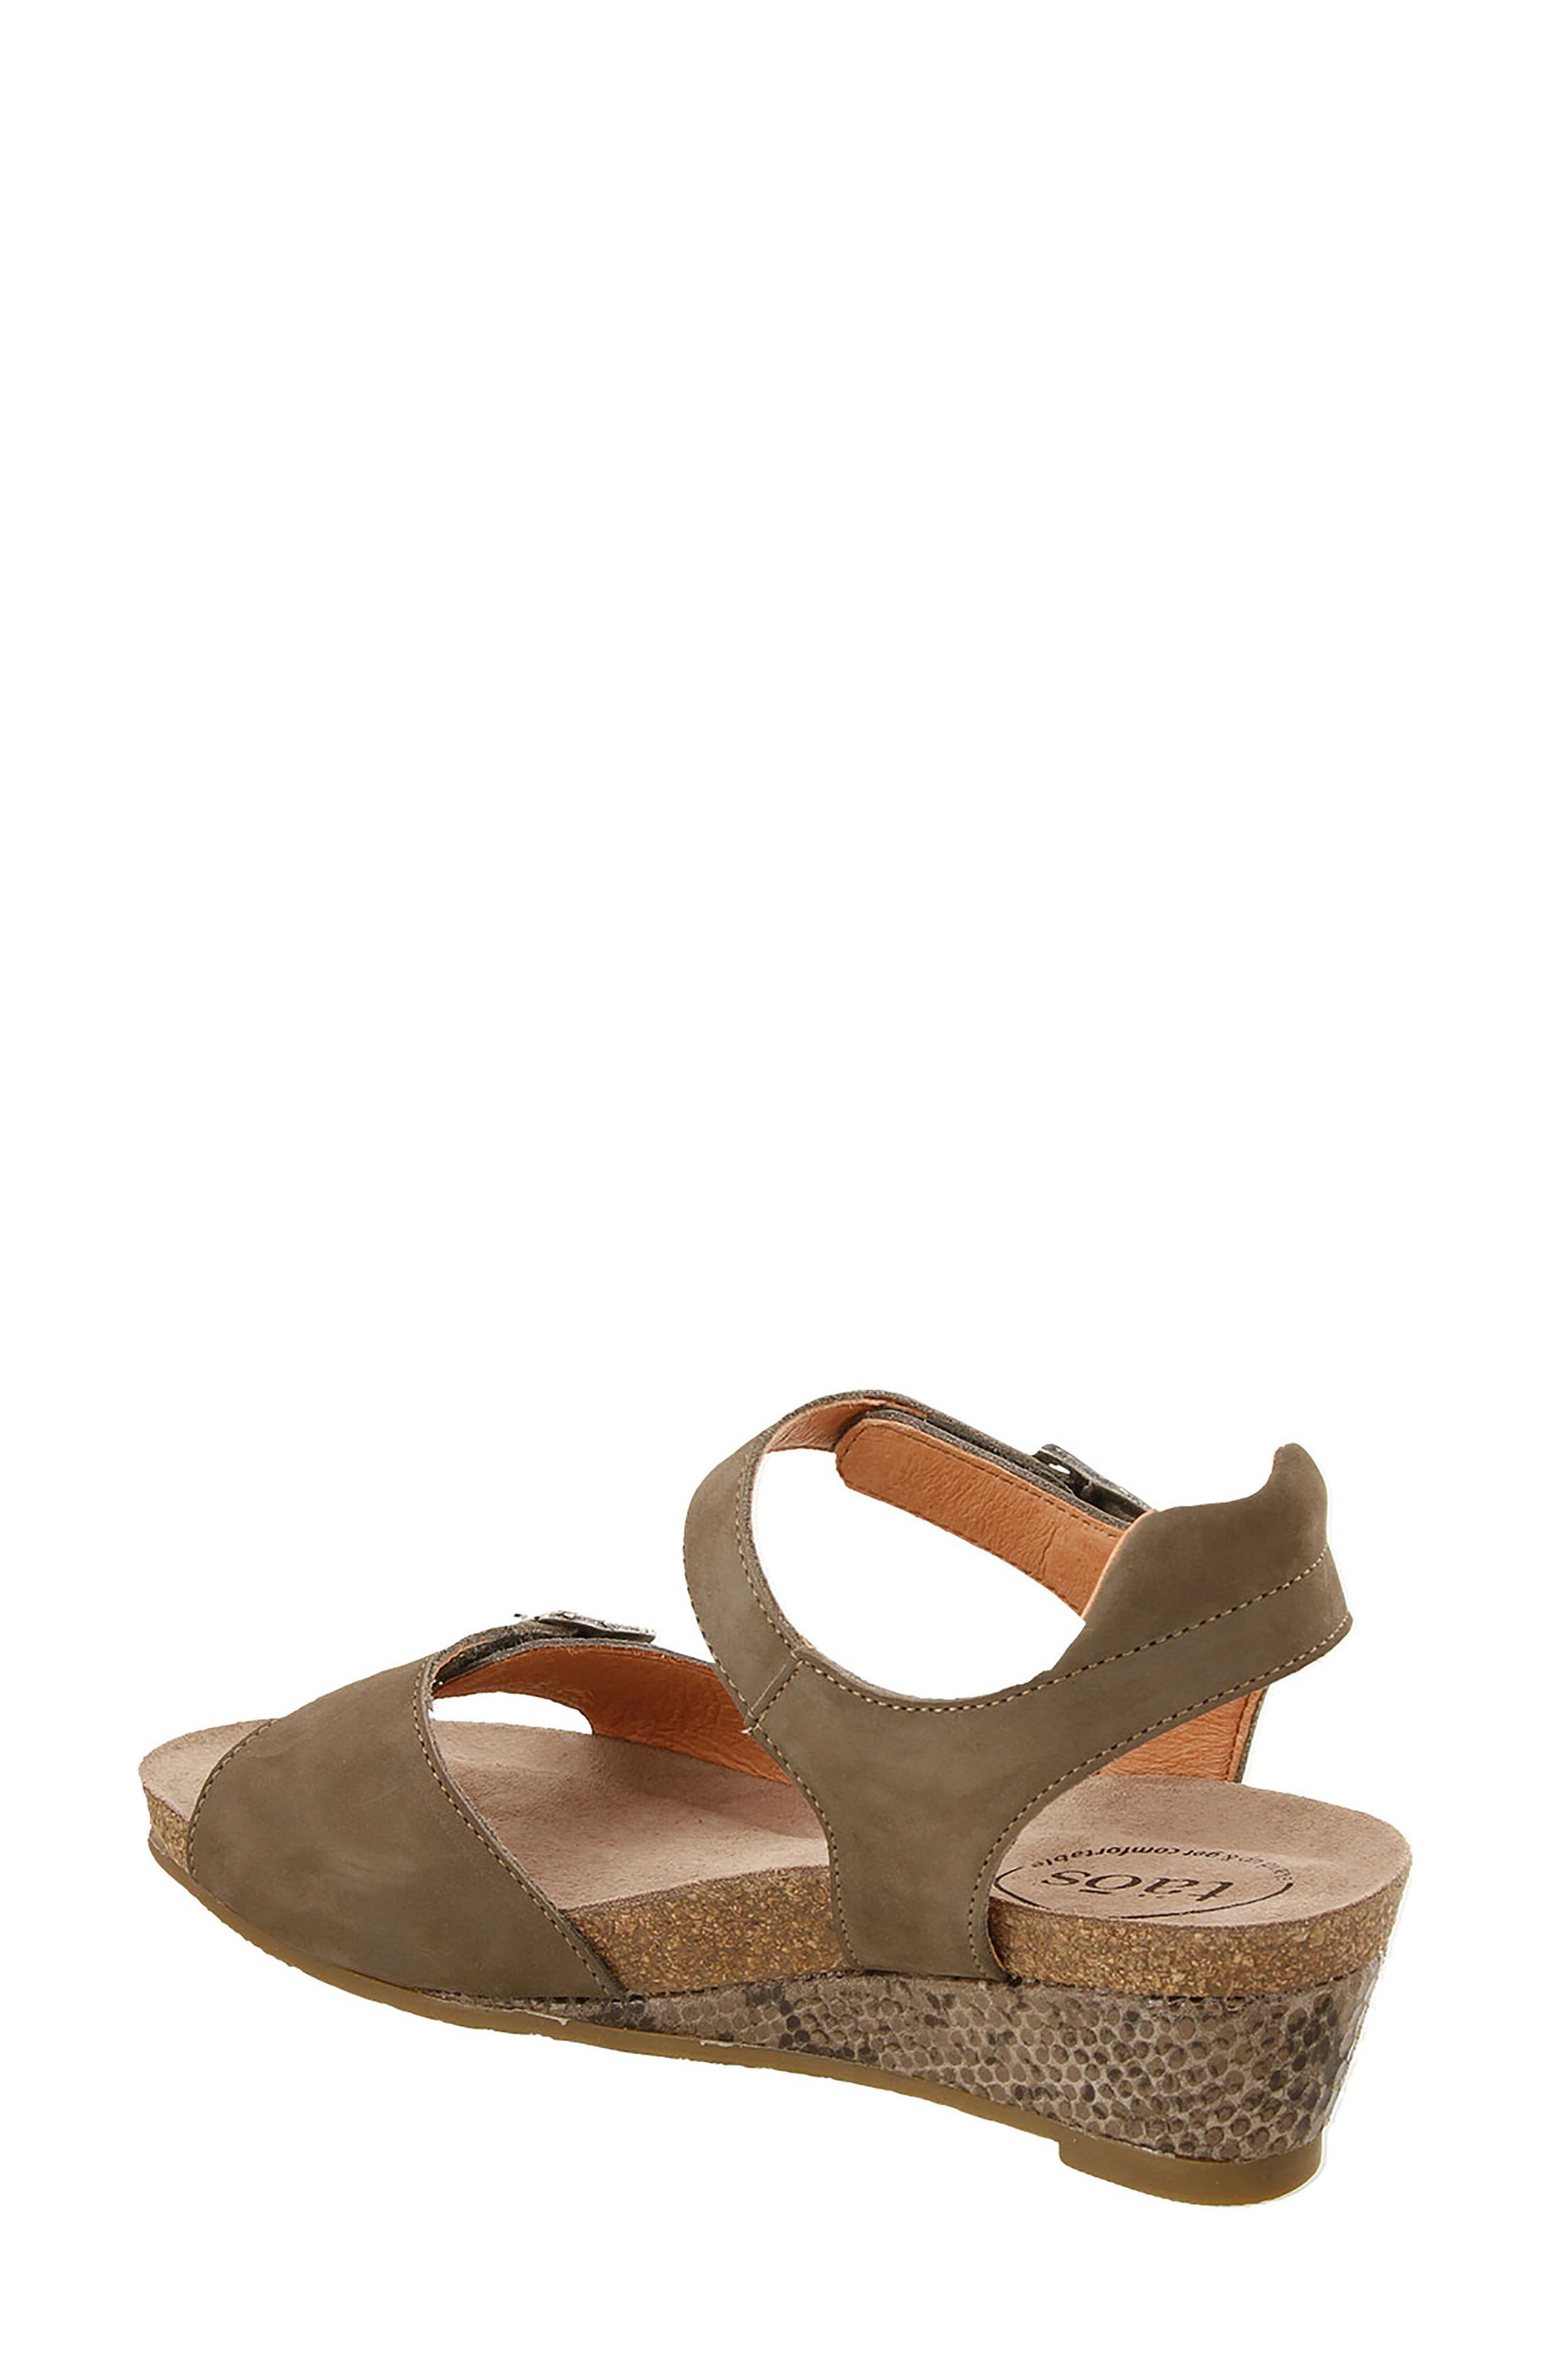 Traveler Wedge Sandal,                             Alternate thumbnail 2, color,                             Taupe Reptile Embossed Leather